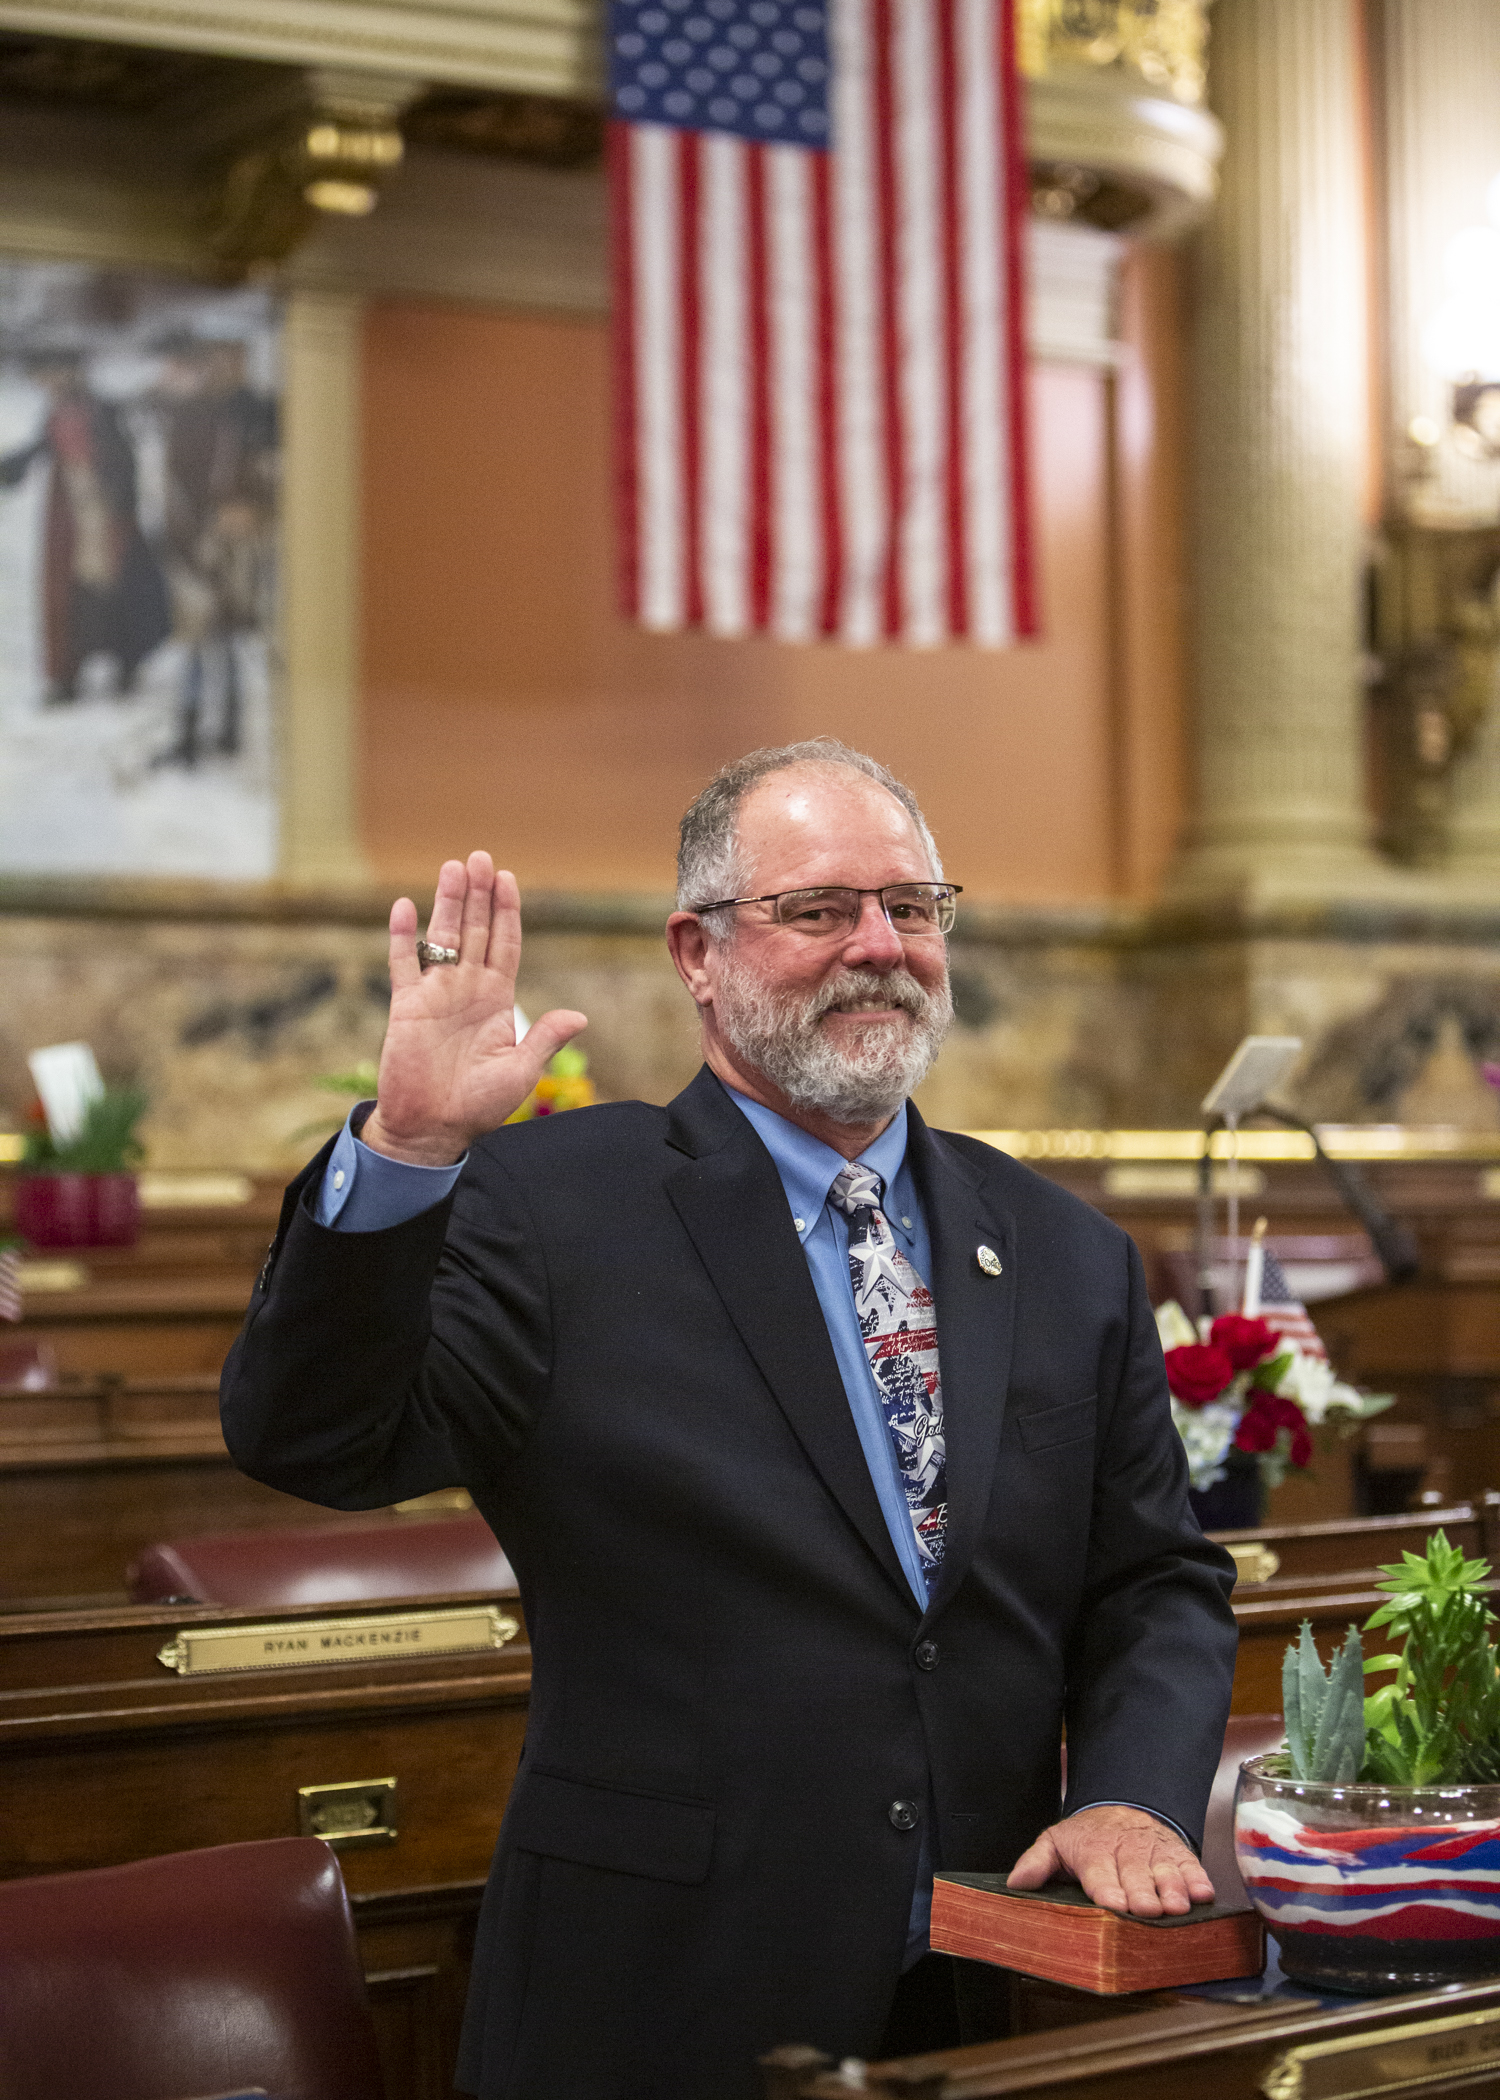 Cook Sworn In to Serve Third Term in House of Representatives